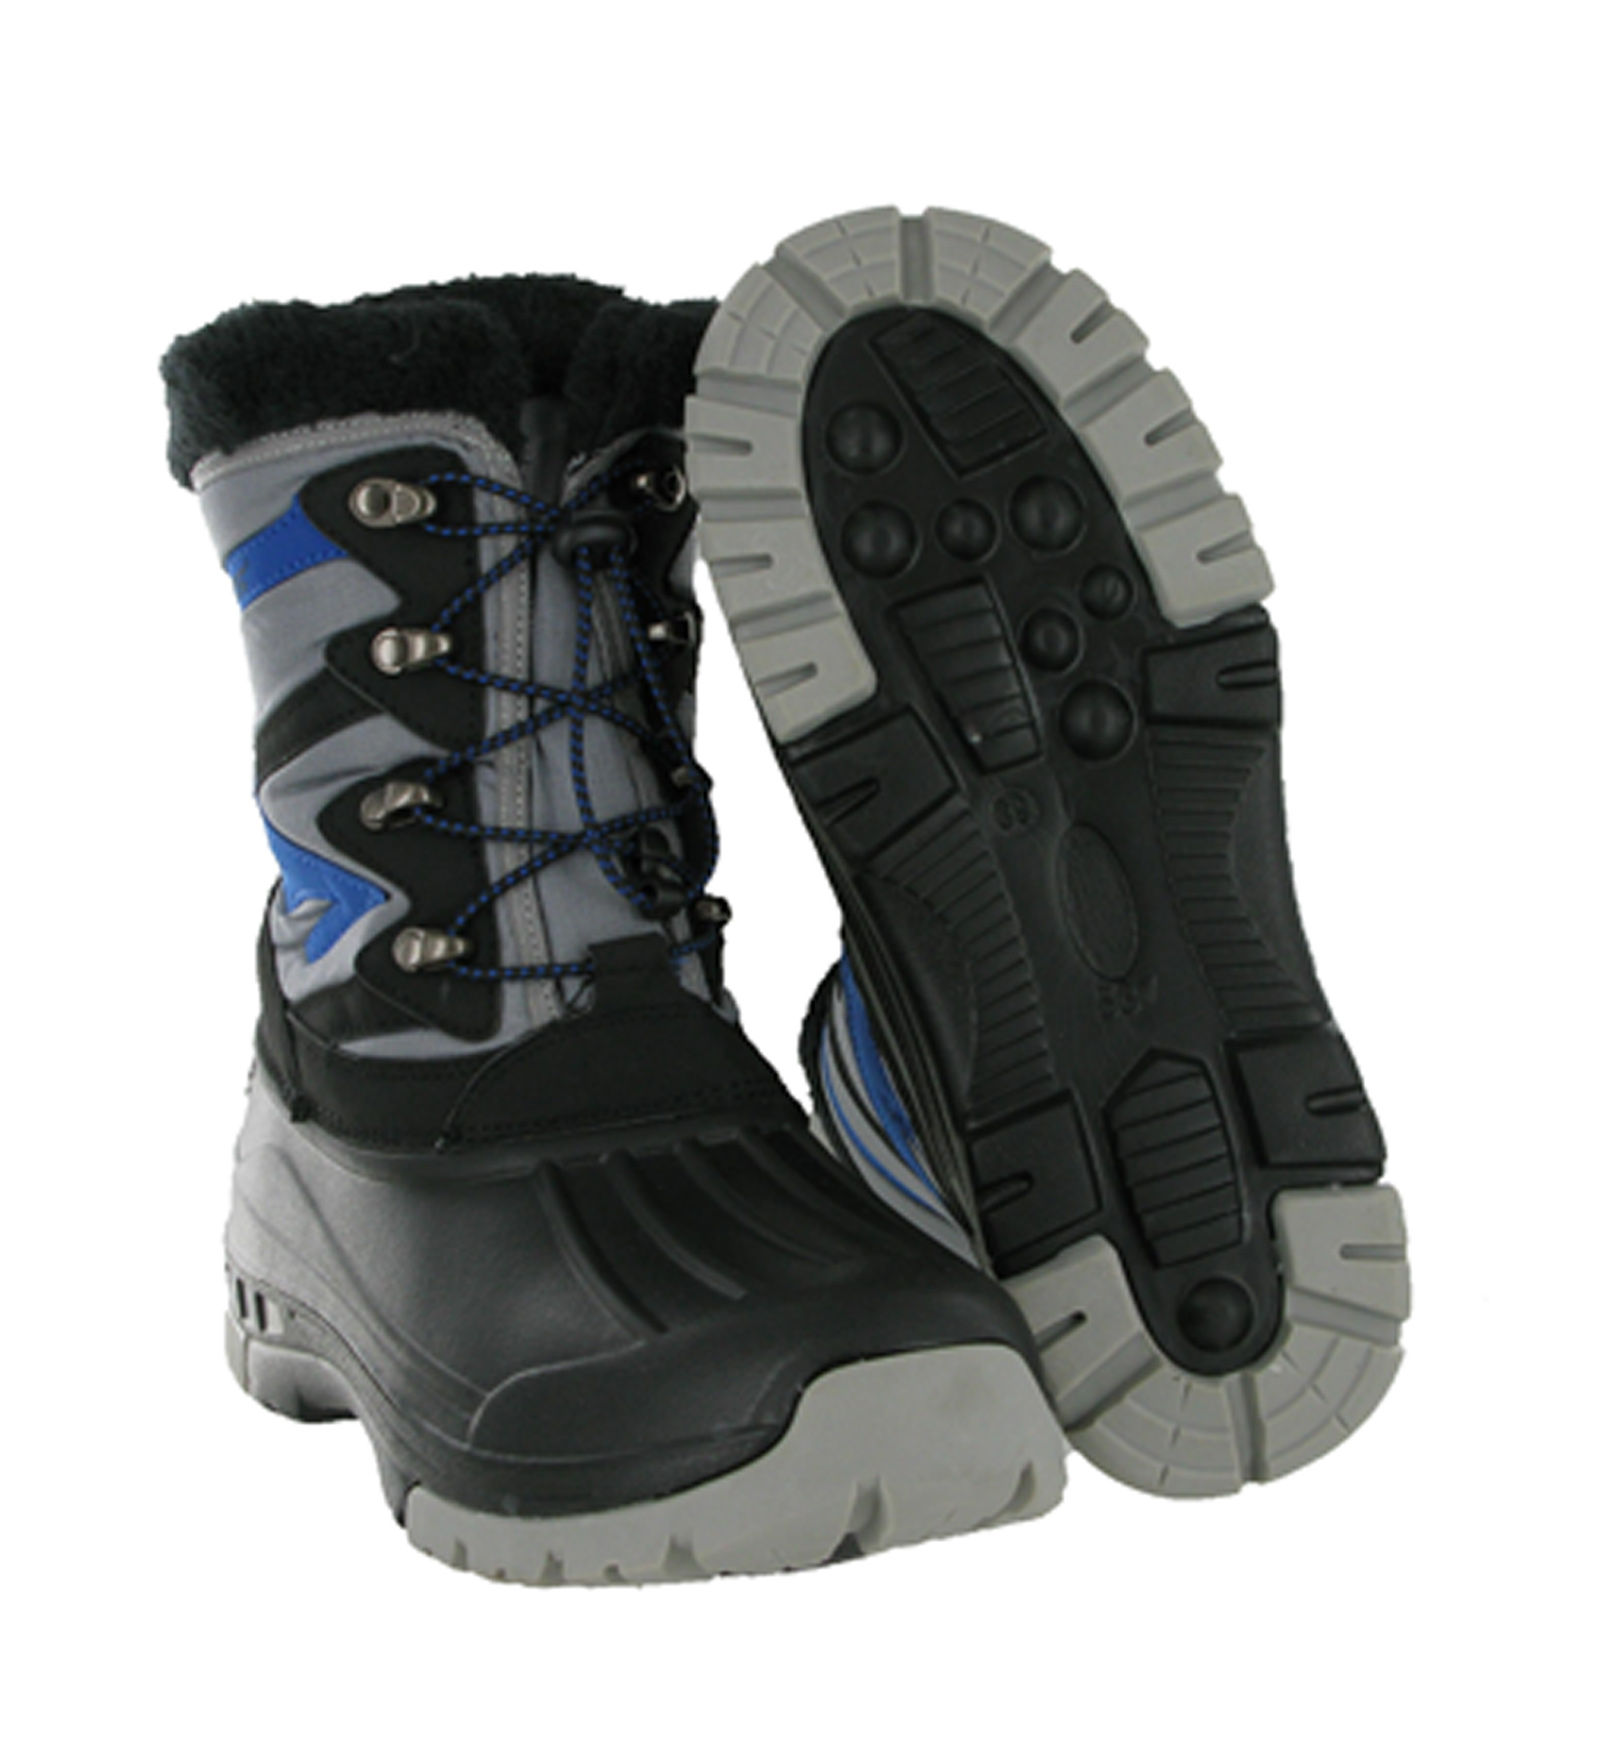 Snow and winter boots for boys and girls provide thermal insulation and slip-resistant soles that can keep your toes toasty and well-protected, whether you need to conquer deep snowdrifts or just maintain an even foothold on the ice and slush.